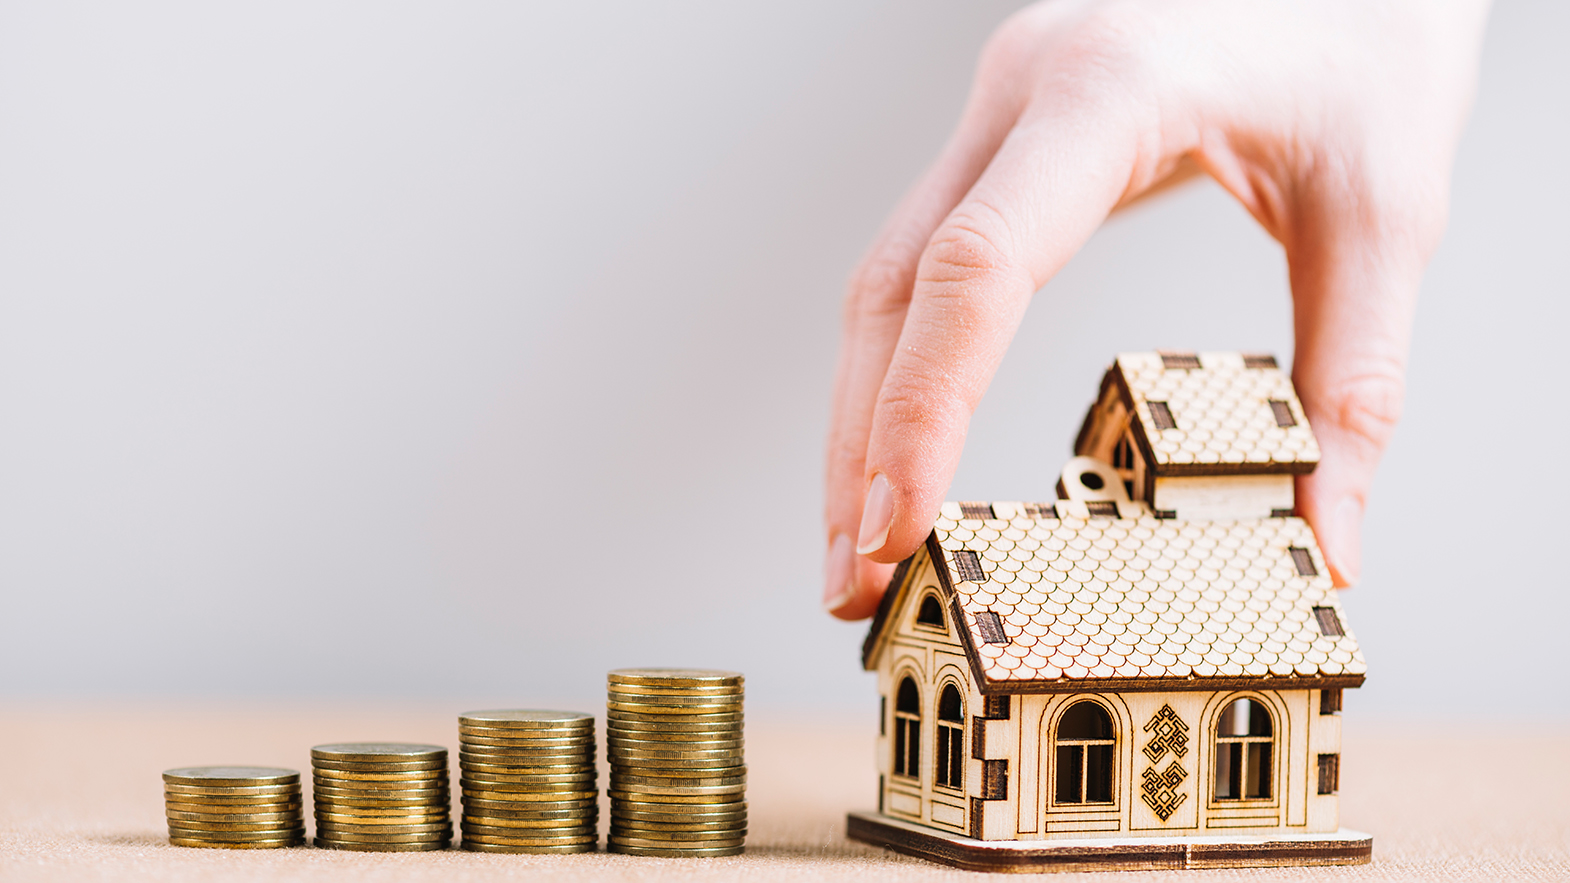 What Is Today's Mortgage Rates? What Will Happen In The